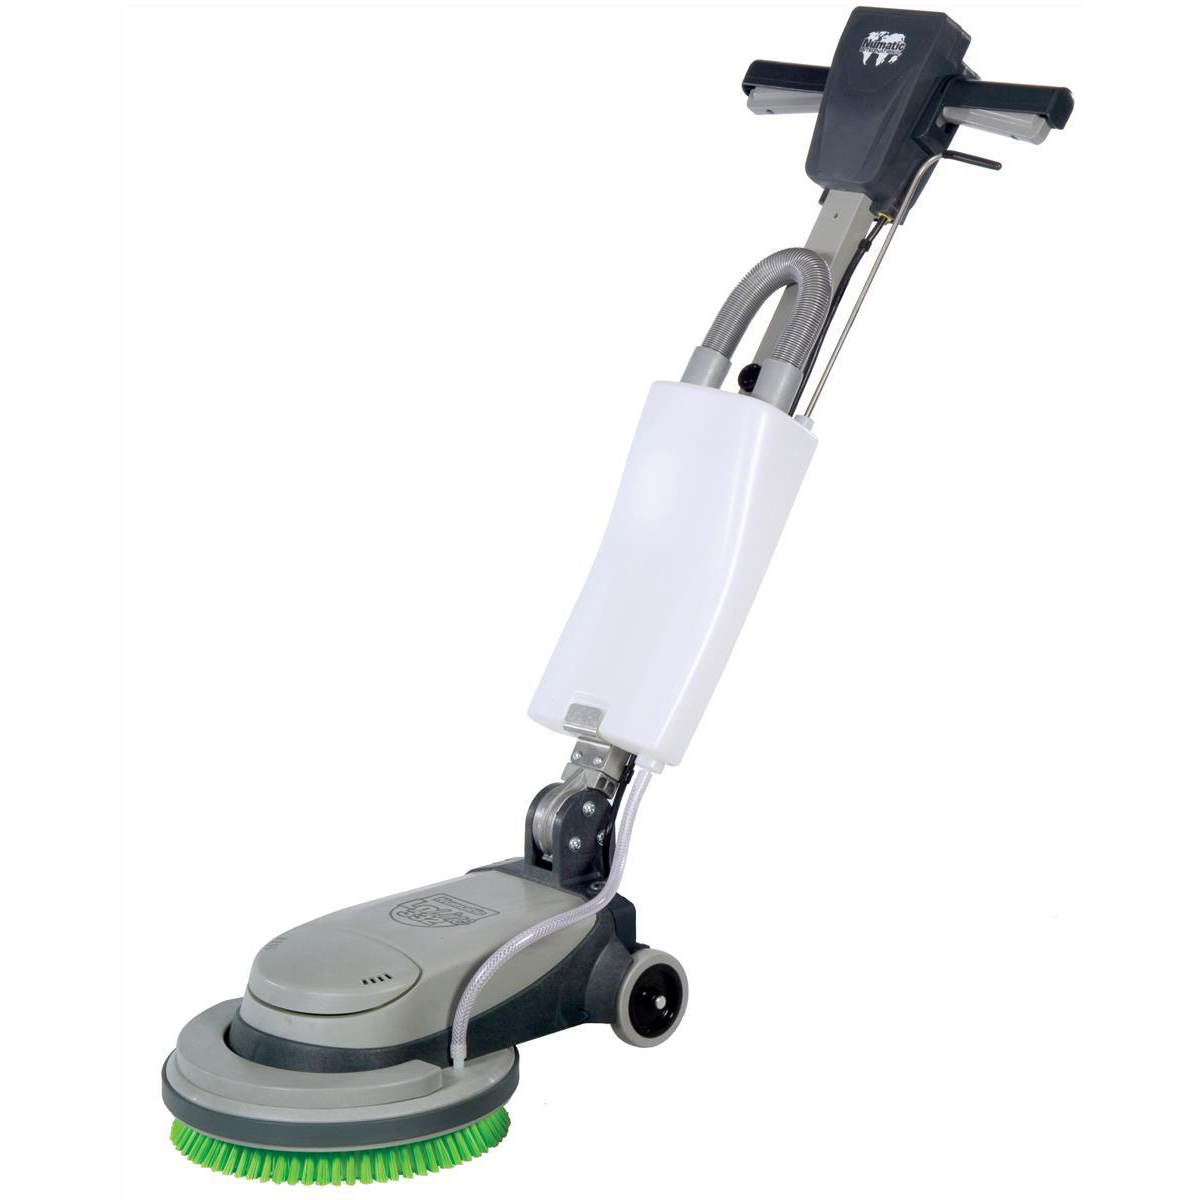 Mops & Buckets Numatic LoLine NLL332 Floor Cleaner with Tank & Brush 400W Motor 200rpm Head 32m Range 18kg Ref 899949